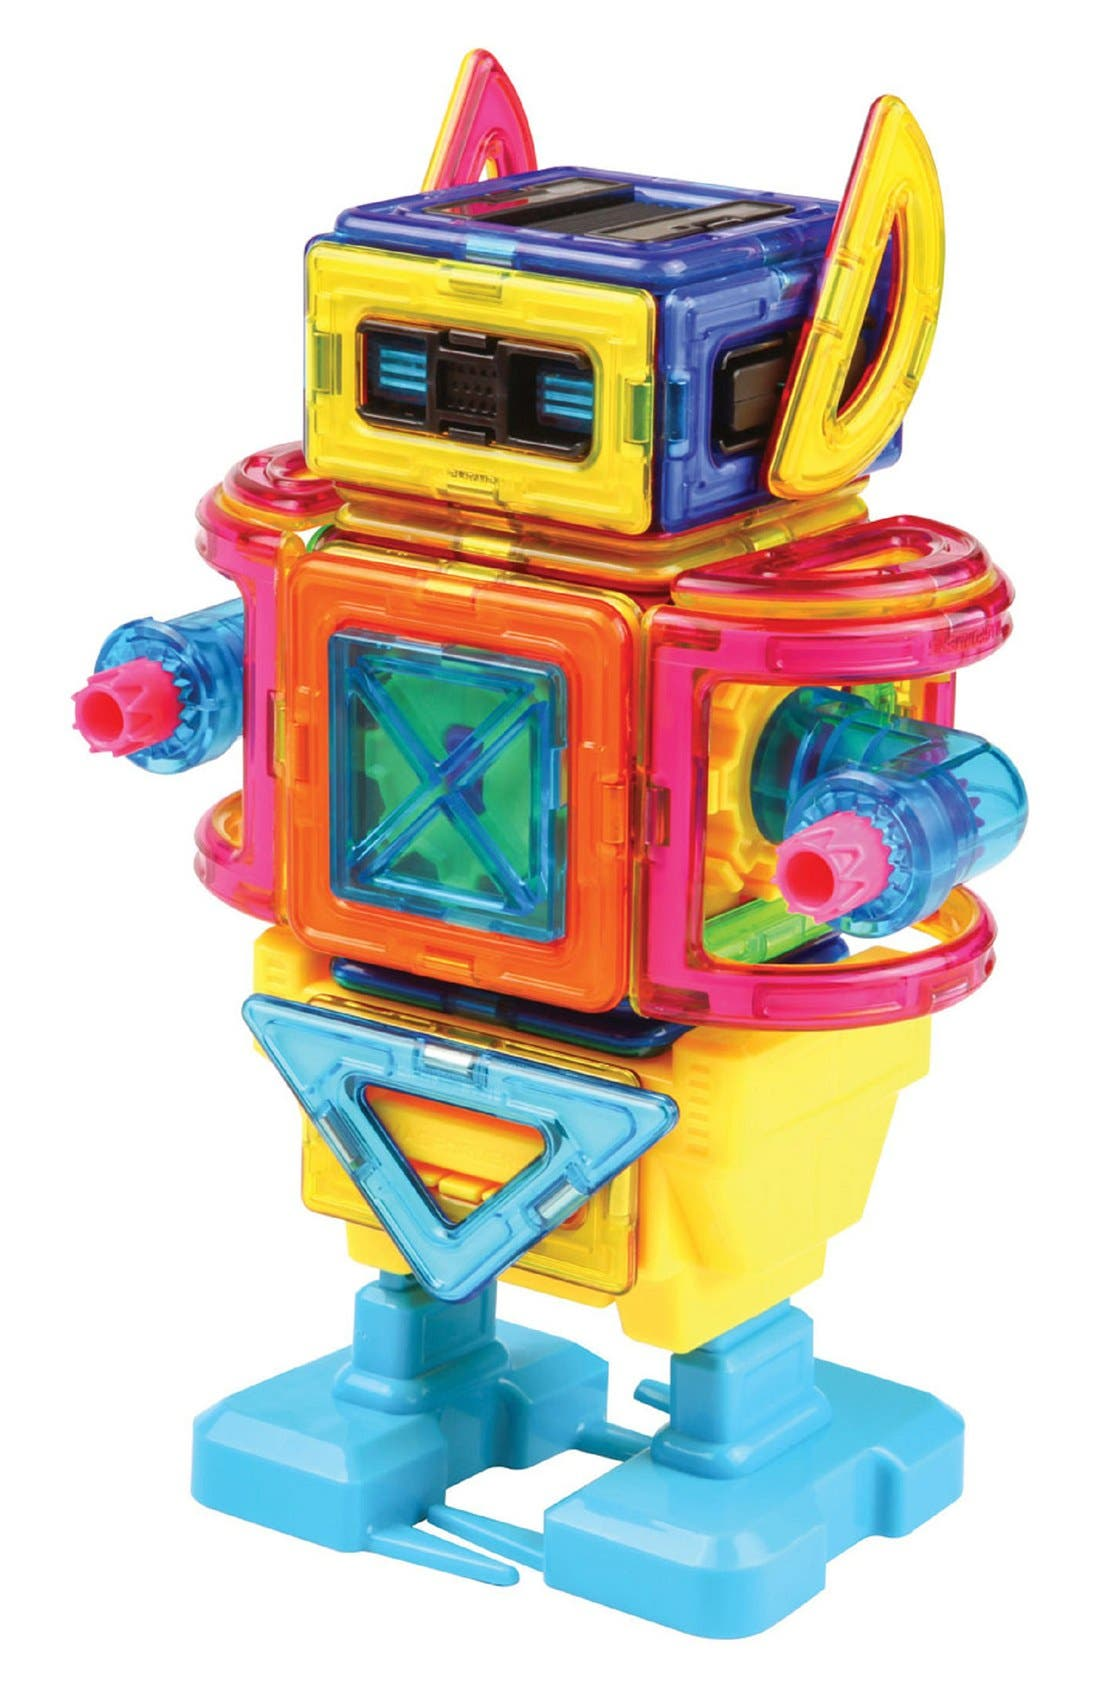 MAGFORMERS,                             'Walking Robot' Magnetic Wind-Up Construction Kit,                             Alternate thumbnail 2, color,                             960